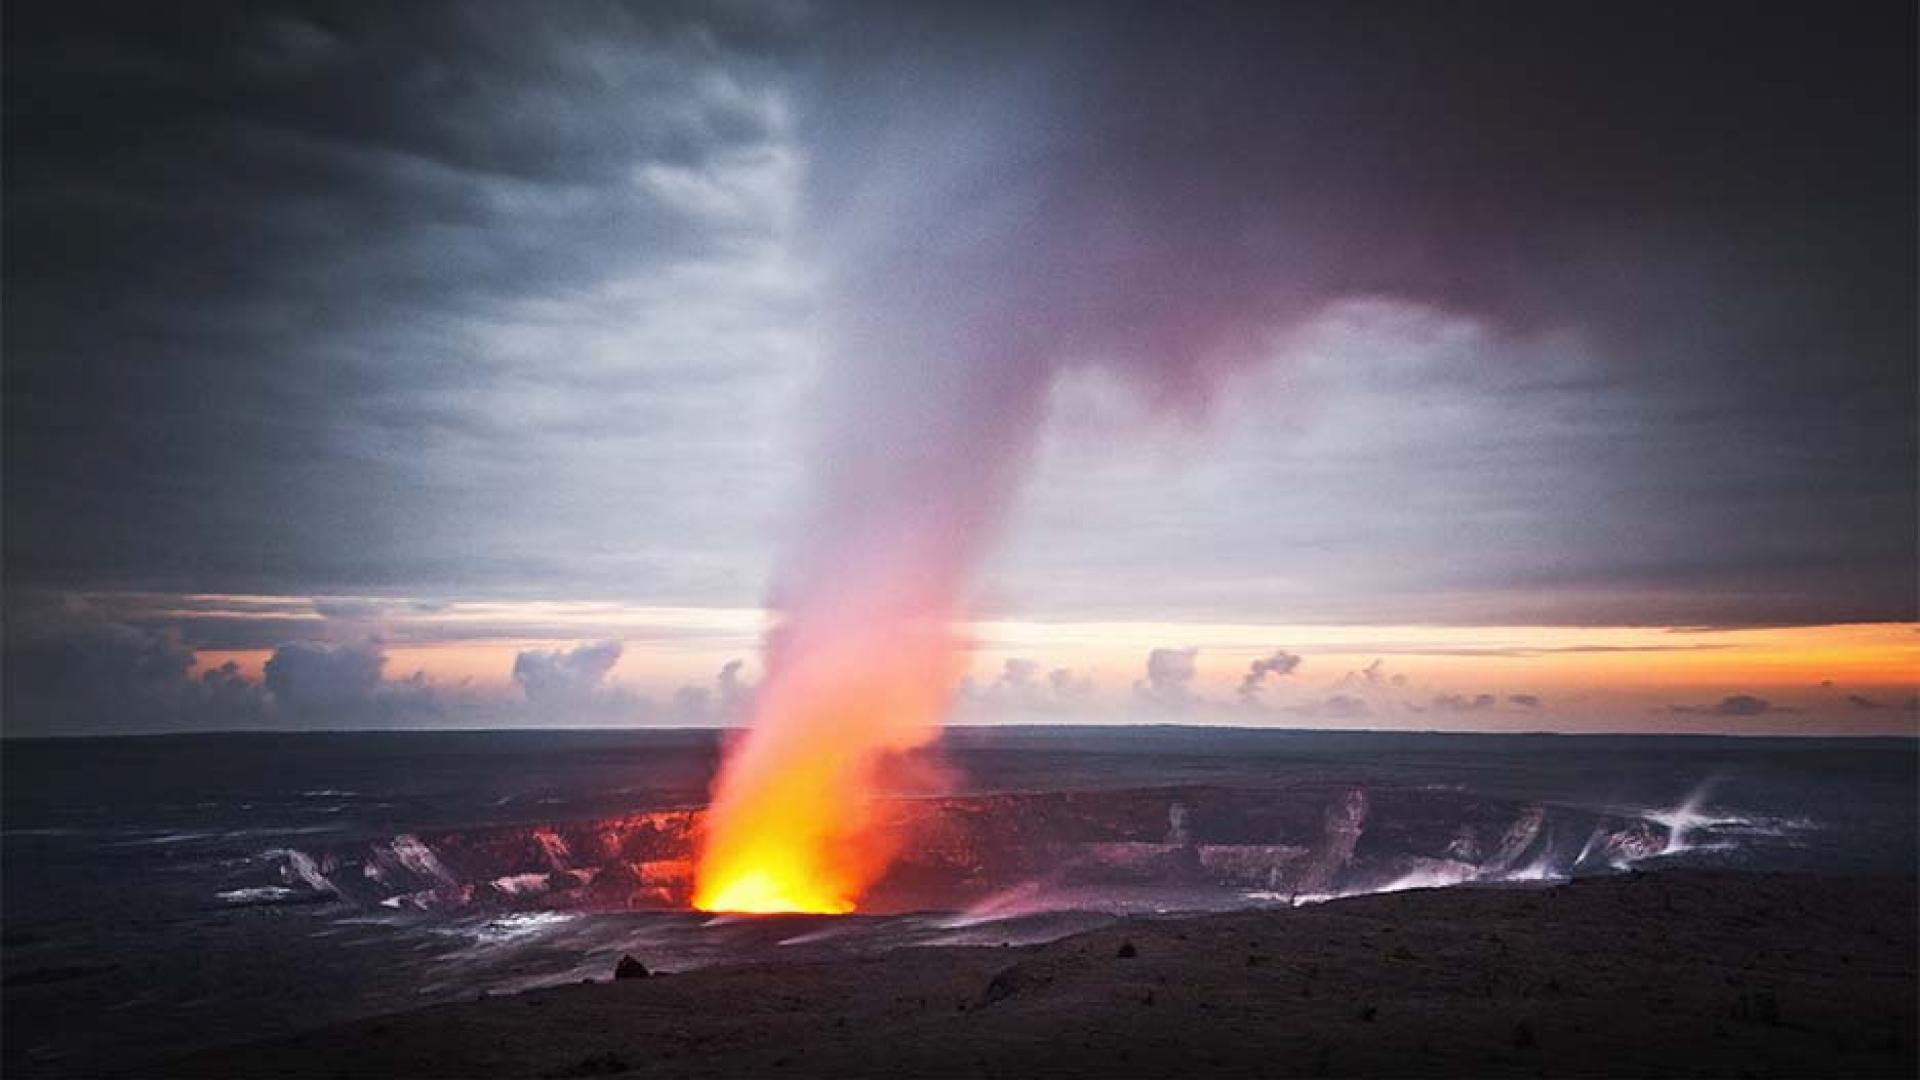 The Halemaumau crater in the Volcanoes National Park, Hawaii